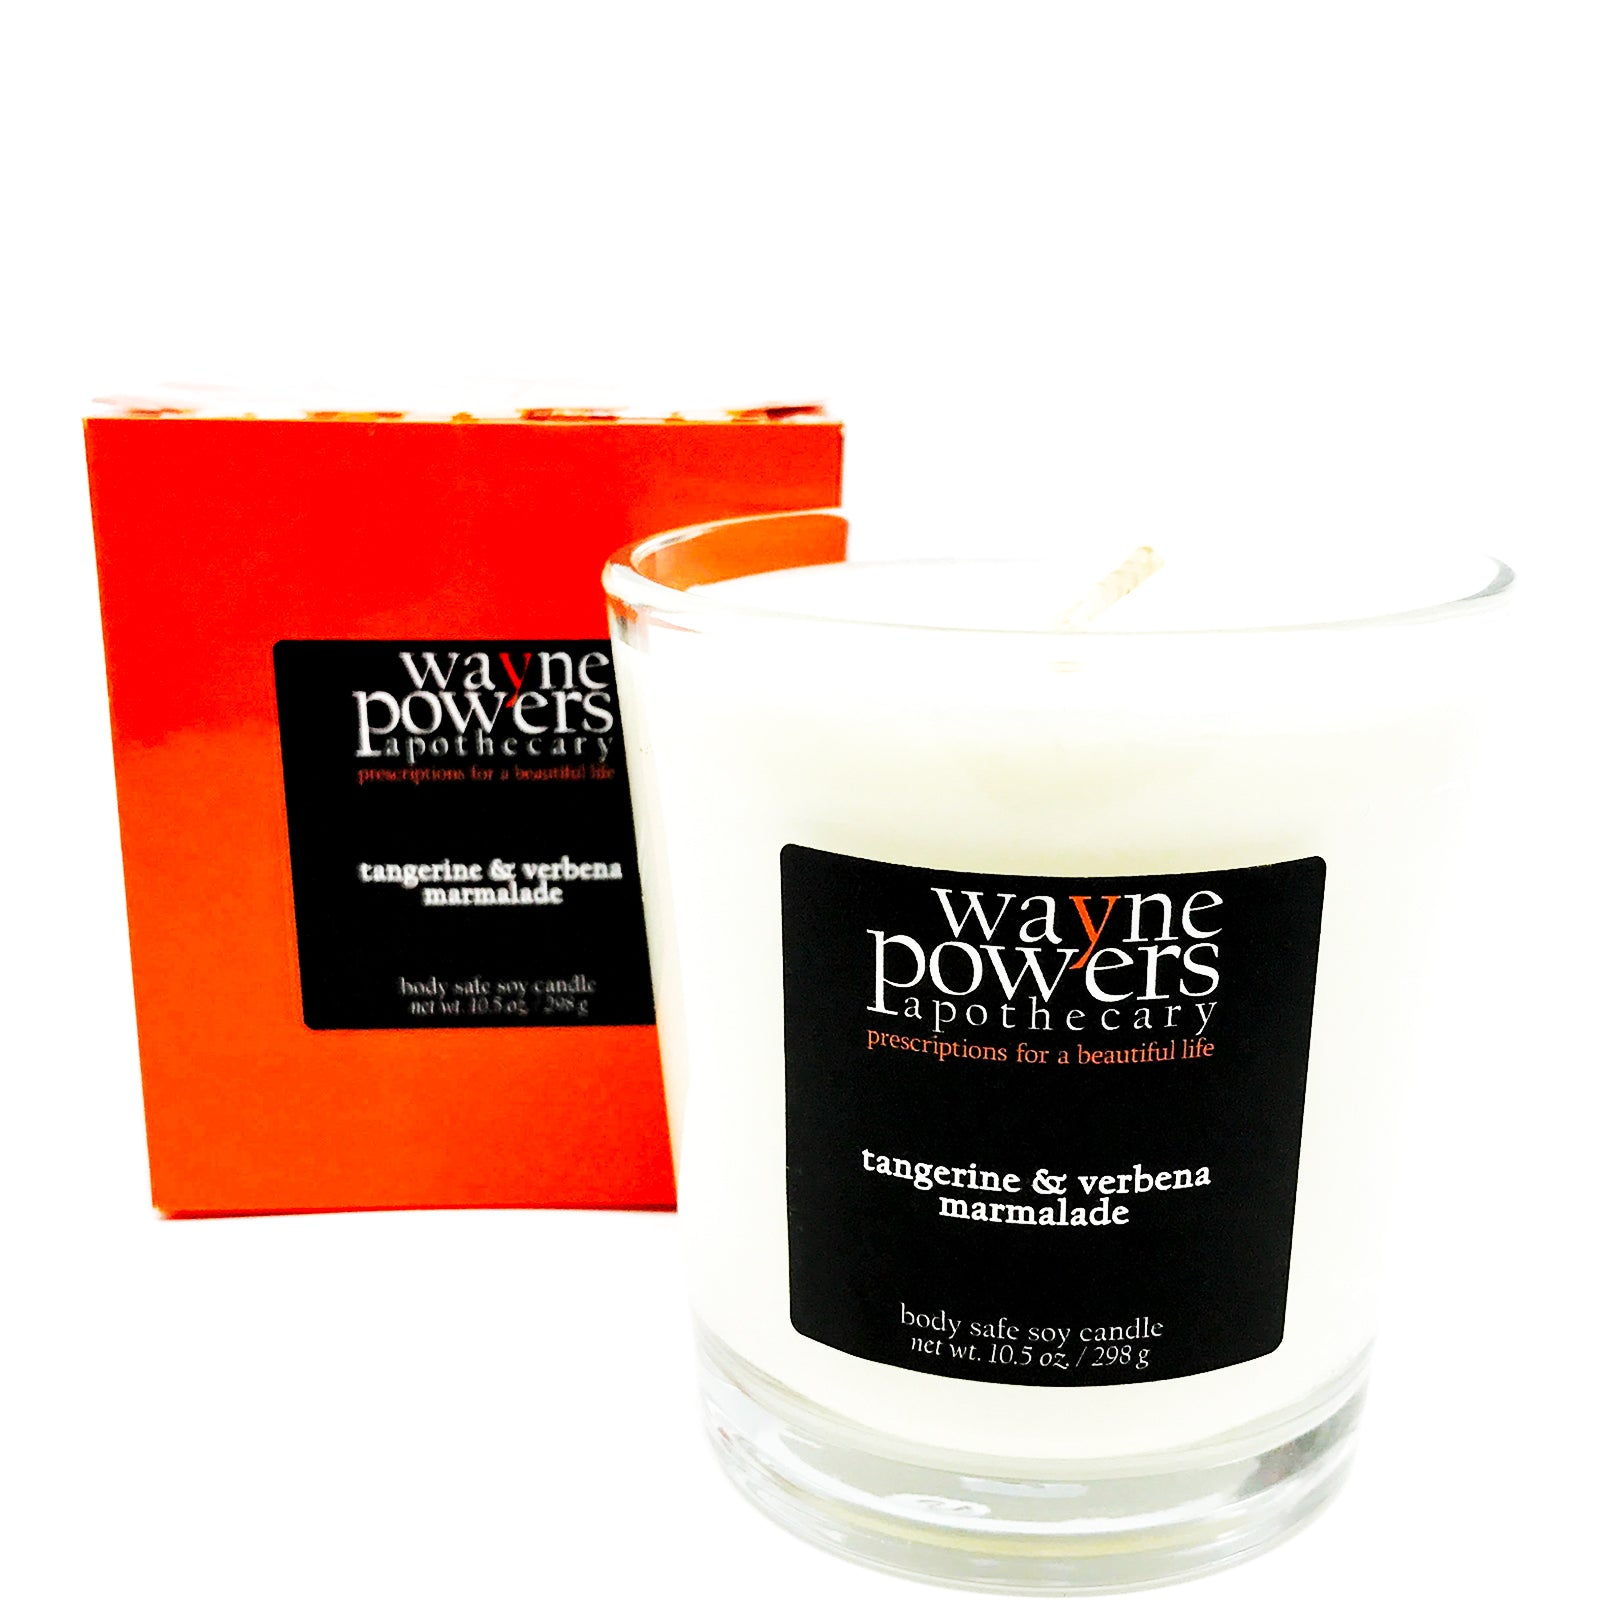 Tangerine & Verbena Body Safe Soy Candle by Wayne Powers Apothecary